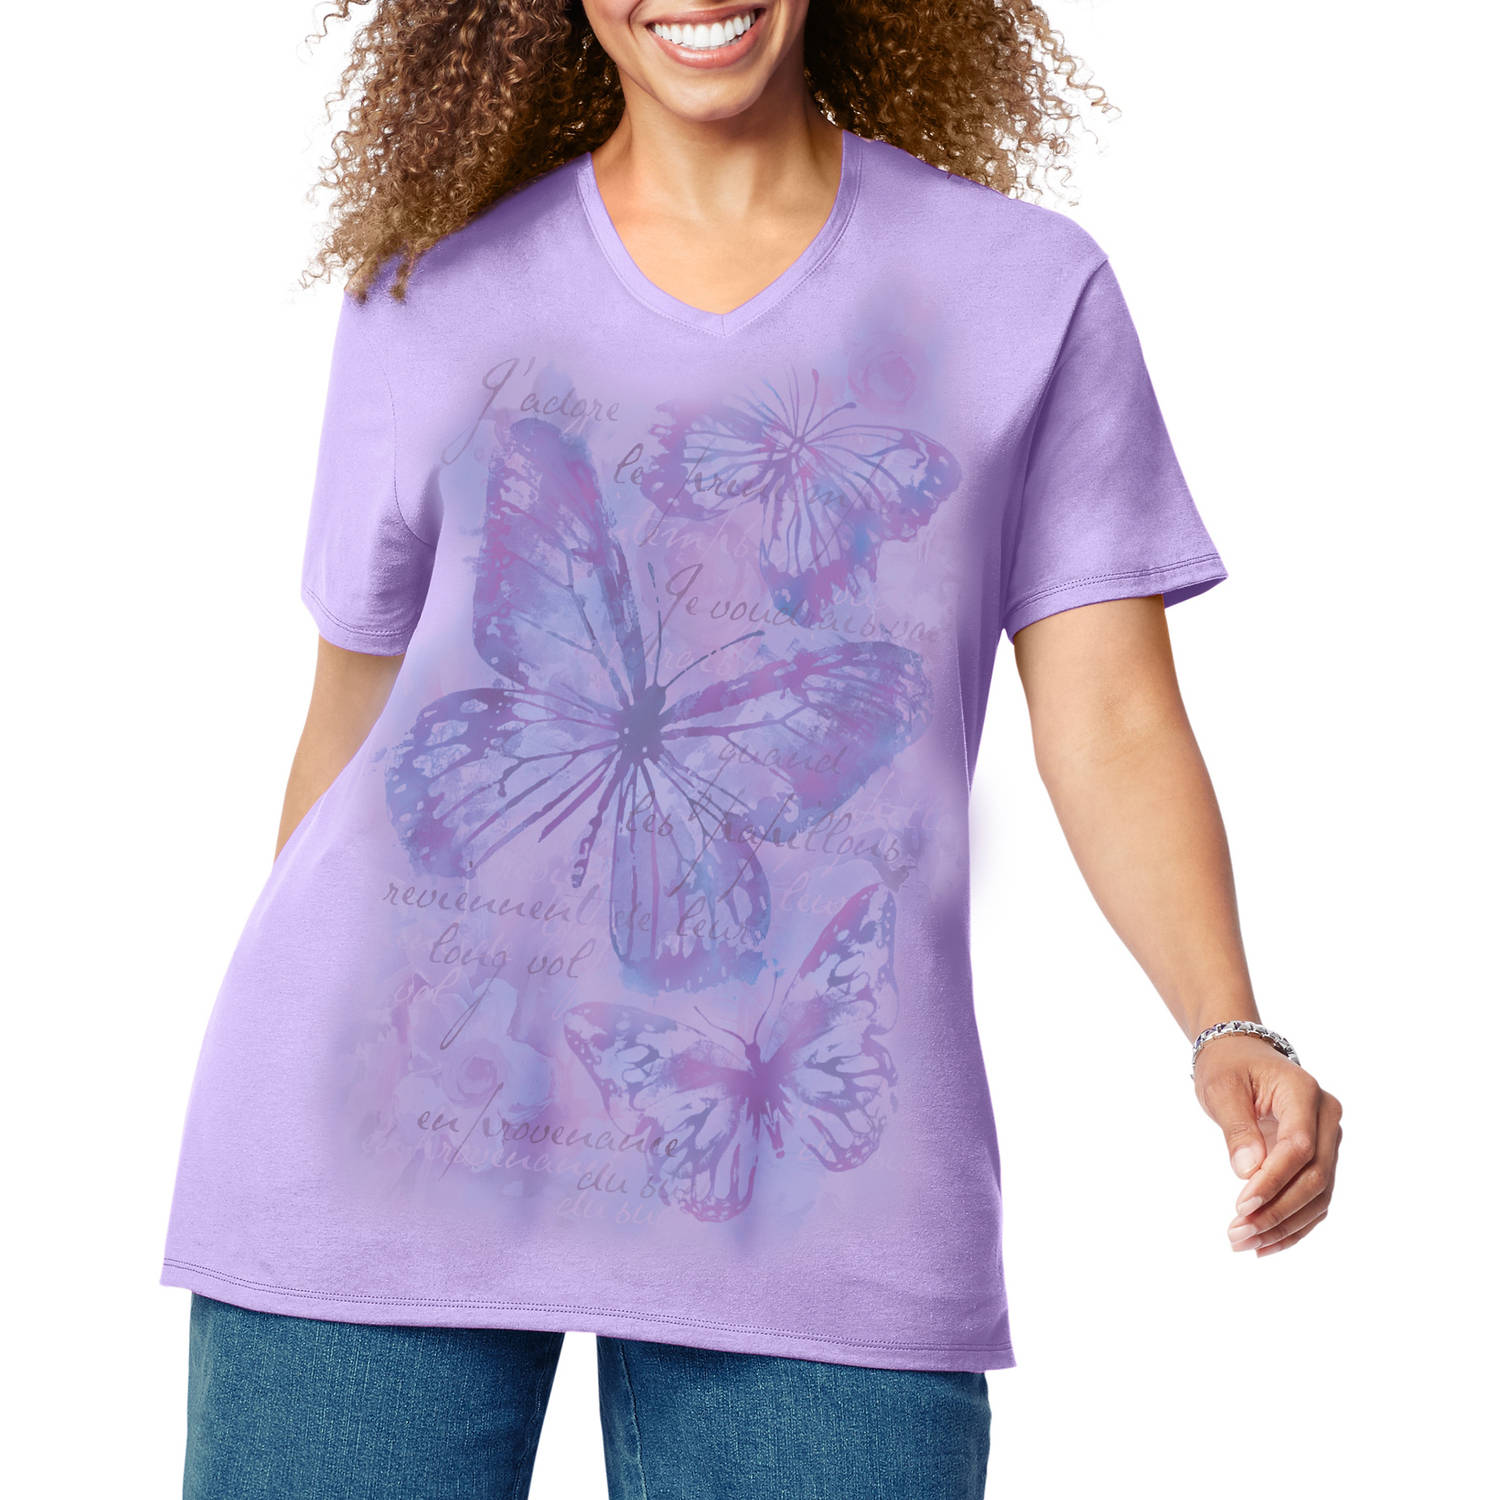 Just My Size Women's Plus-Size Printed Short Sleeve V-neck T-shirt